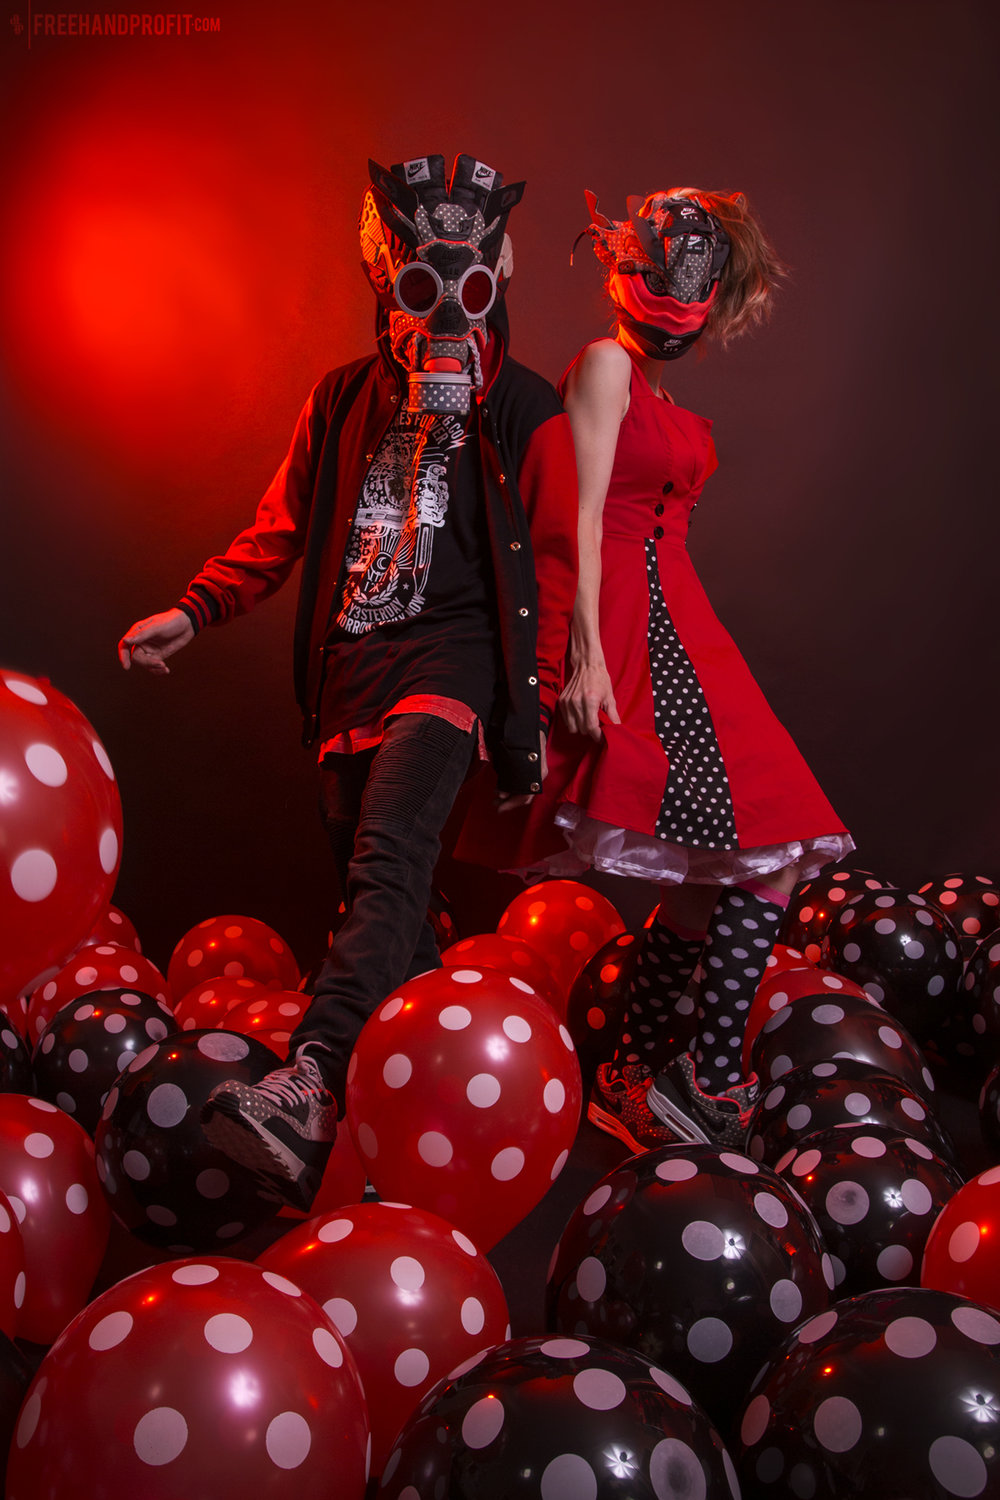 No.142 & 143: Polka Dot Air Max 90 Gas Mask & Air Max 1 Mask  [CLICK FOR MORE]